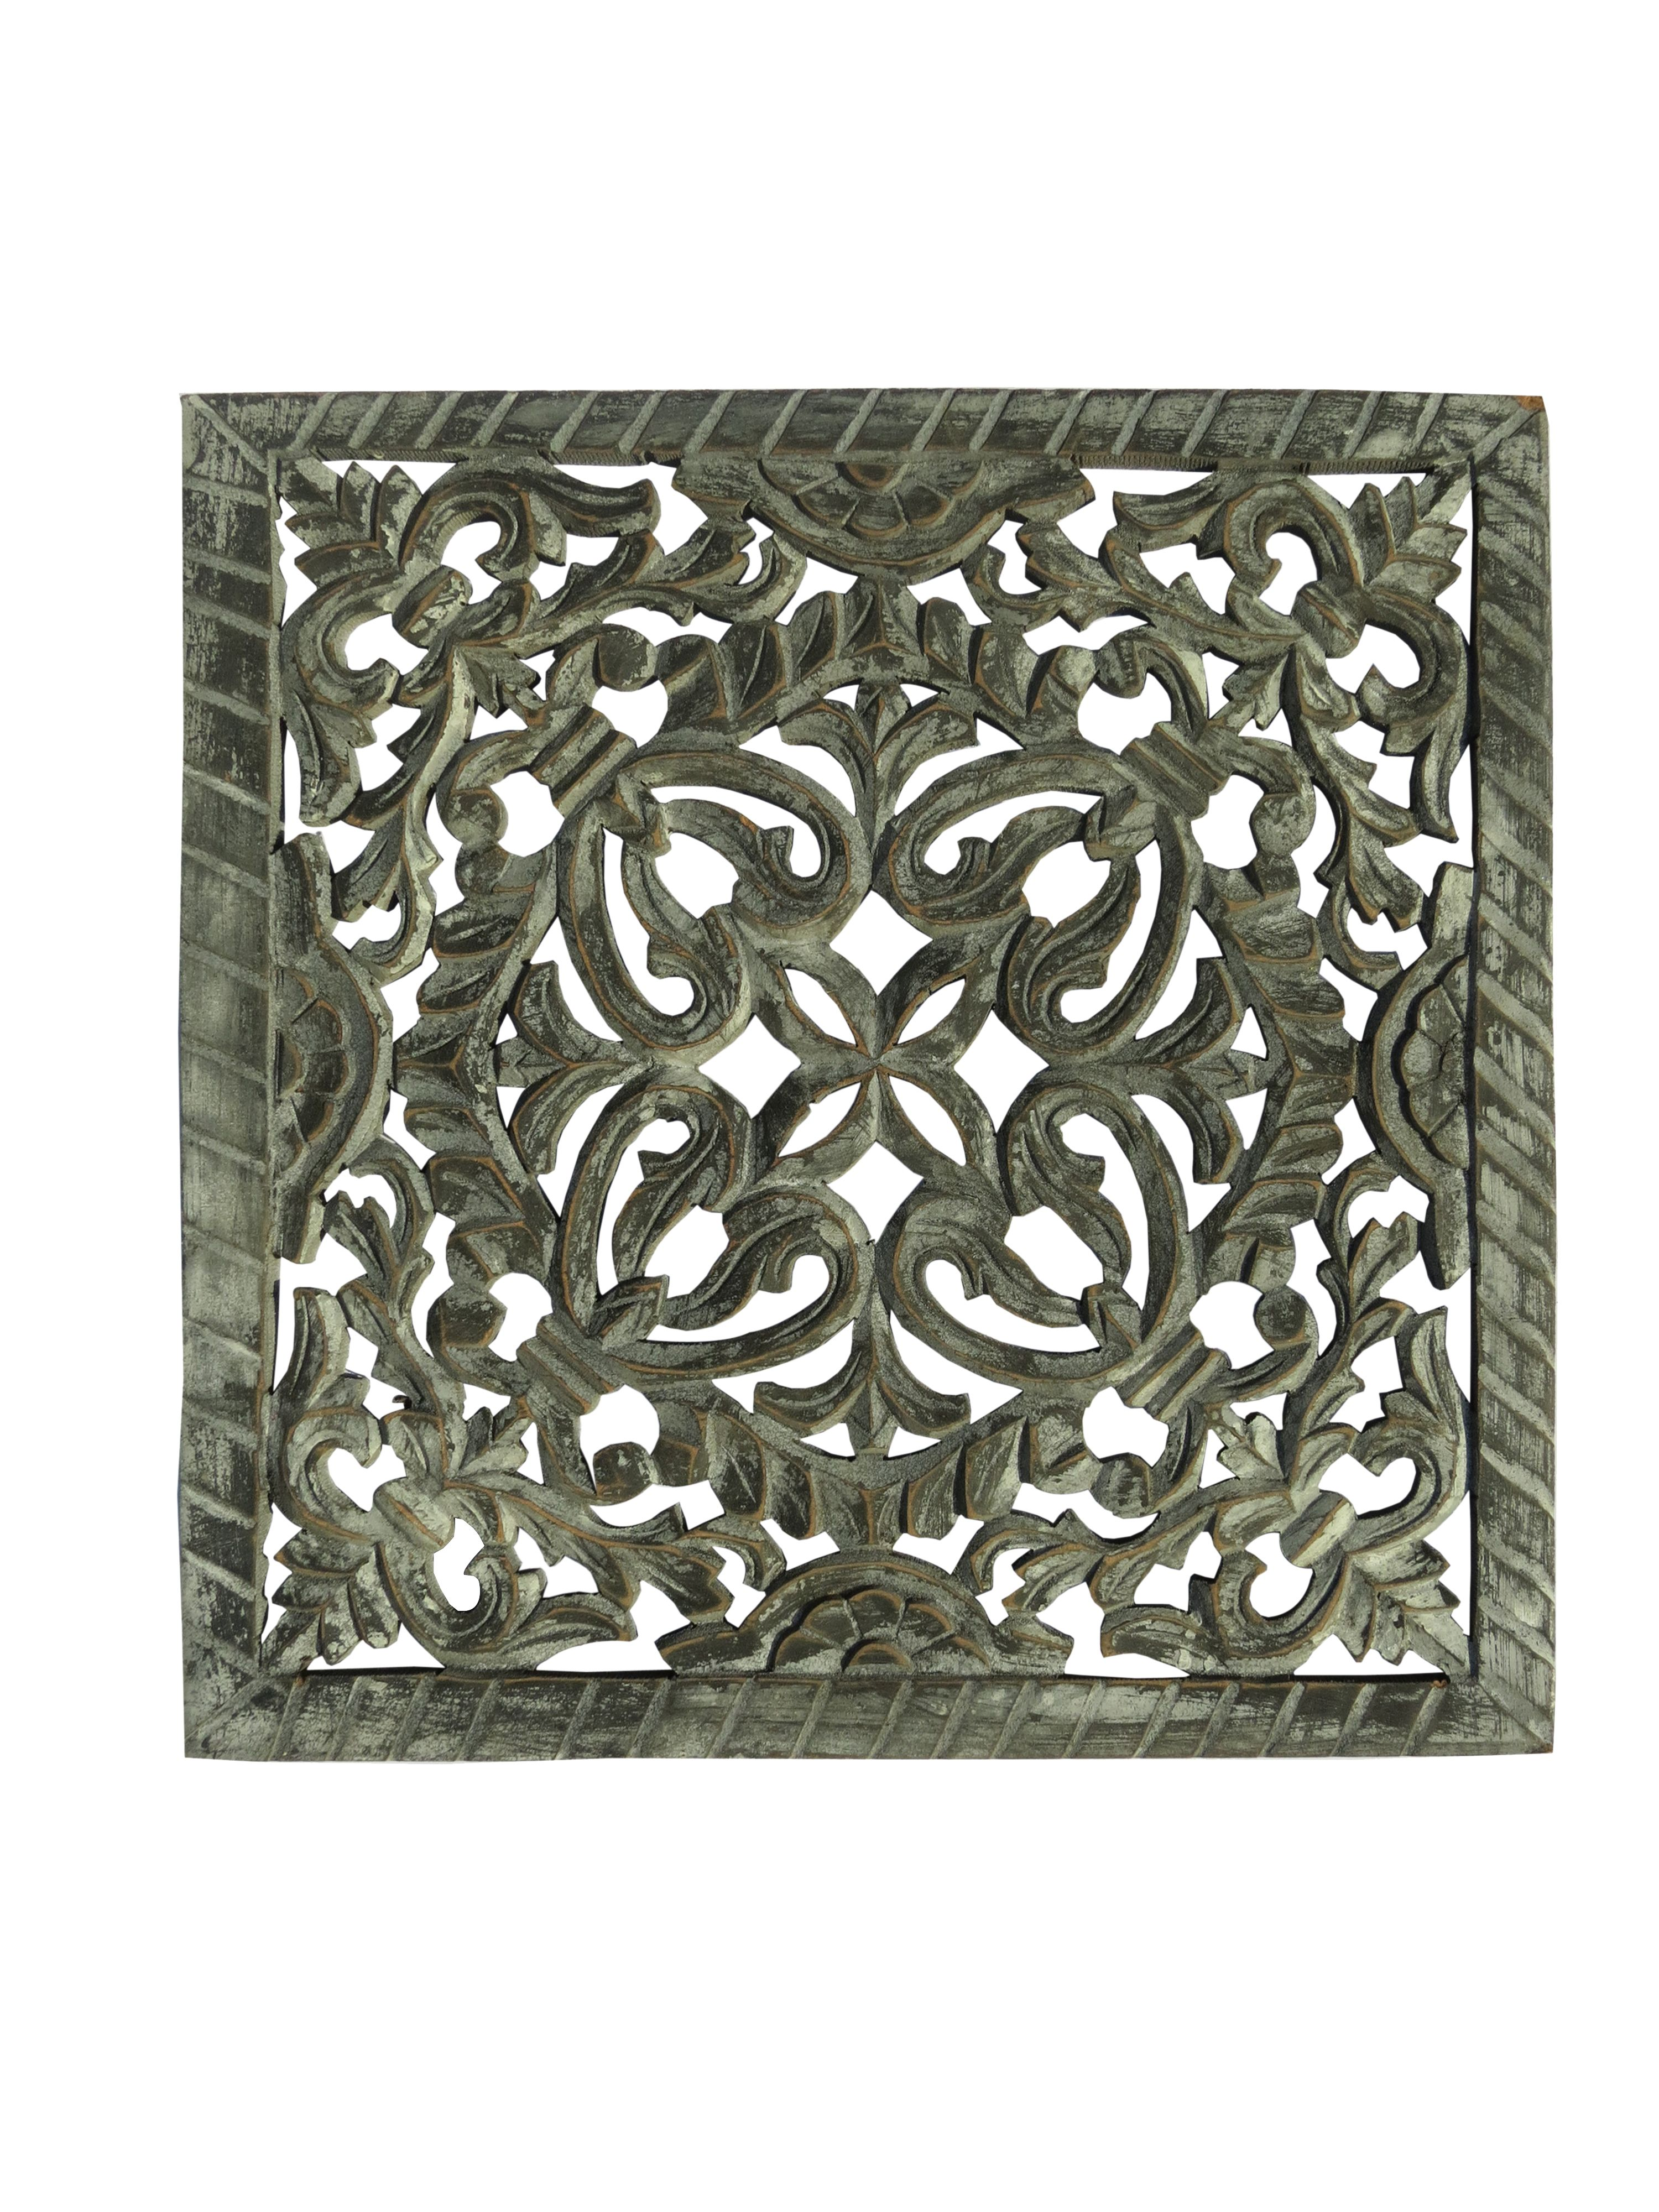 Mdf Carved Panel Design In Grey Antique Finish Reliable Durable Indian Authentic Handicrafts With Antique Rur Wooden Wall Panels Panel Design Wood Paneling